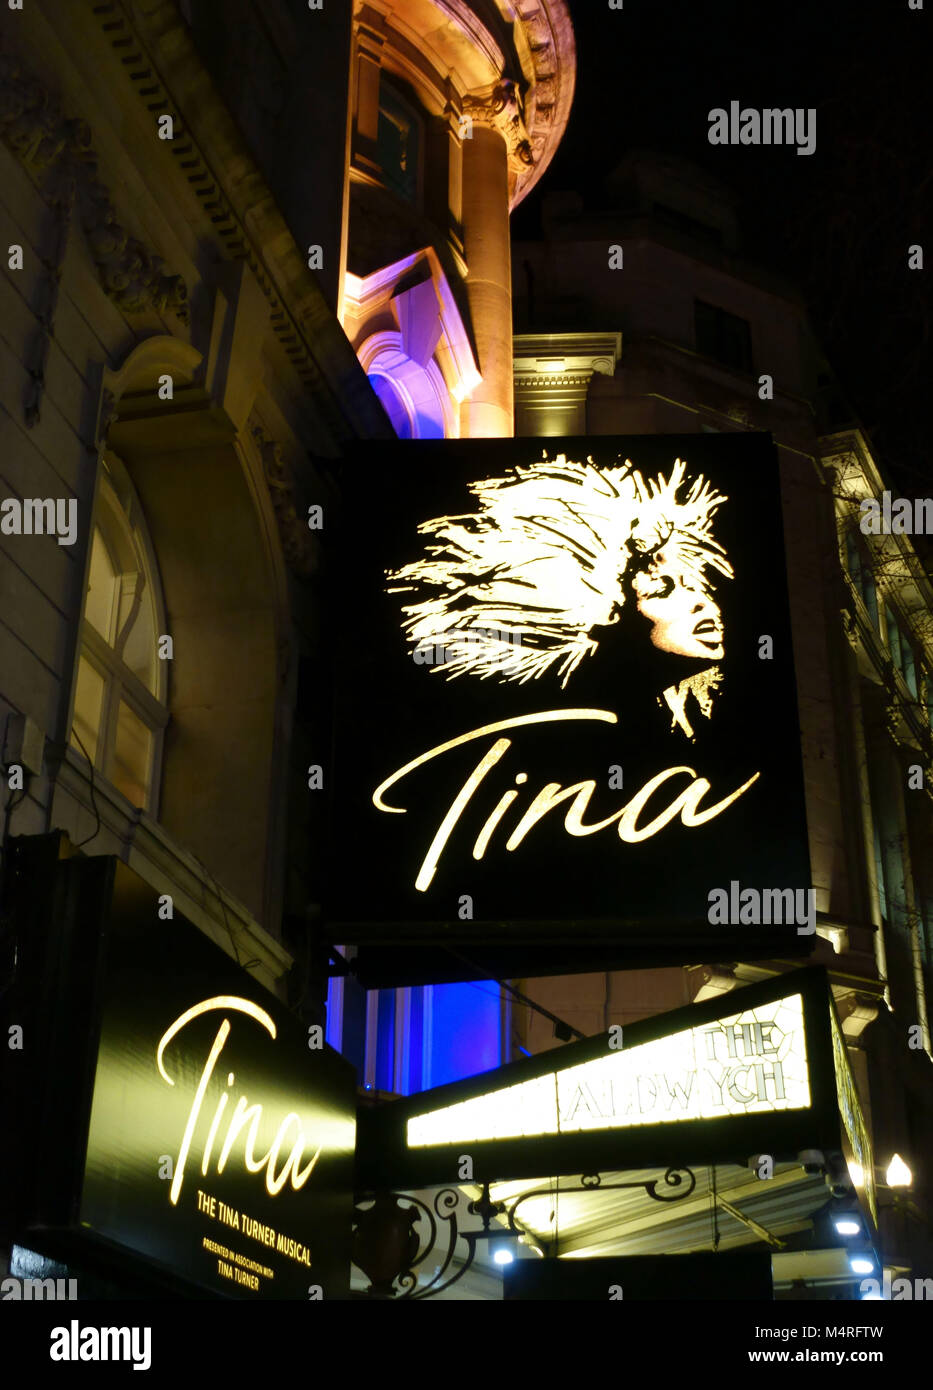 'Tina' musical about Tina Turner at Aldwych Theatre, London - Stock Image